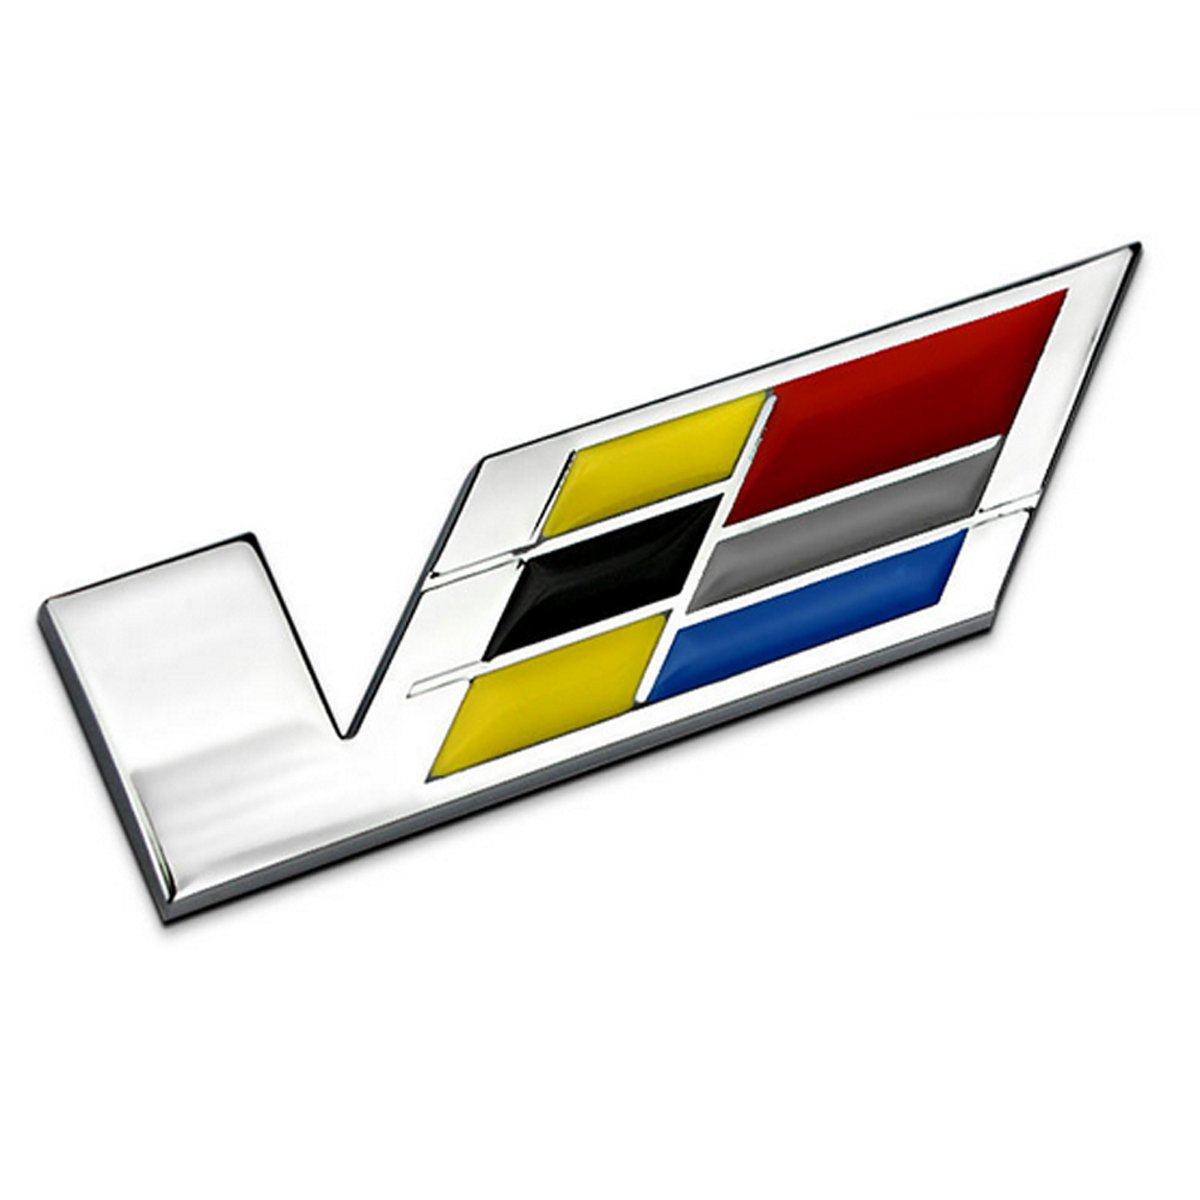 TK-KLZ for Cadillac 3D Metal High Performance Engine V Logo Car Side Fender Rear Trunk Emblem Badge Decals sticker for Cadillac SRX XTS ATS CTS CTS EXT ATS-L COUPE Hybrid ESCALADE Decoration 96887